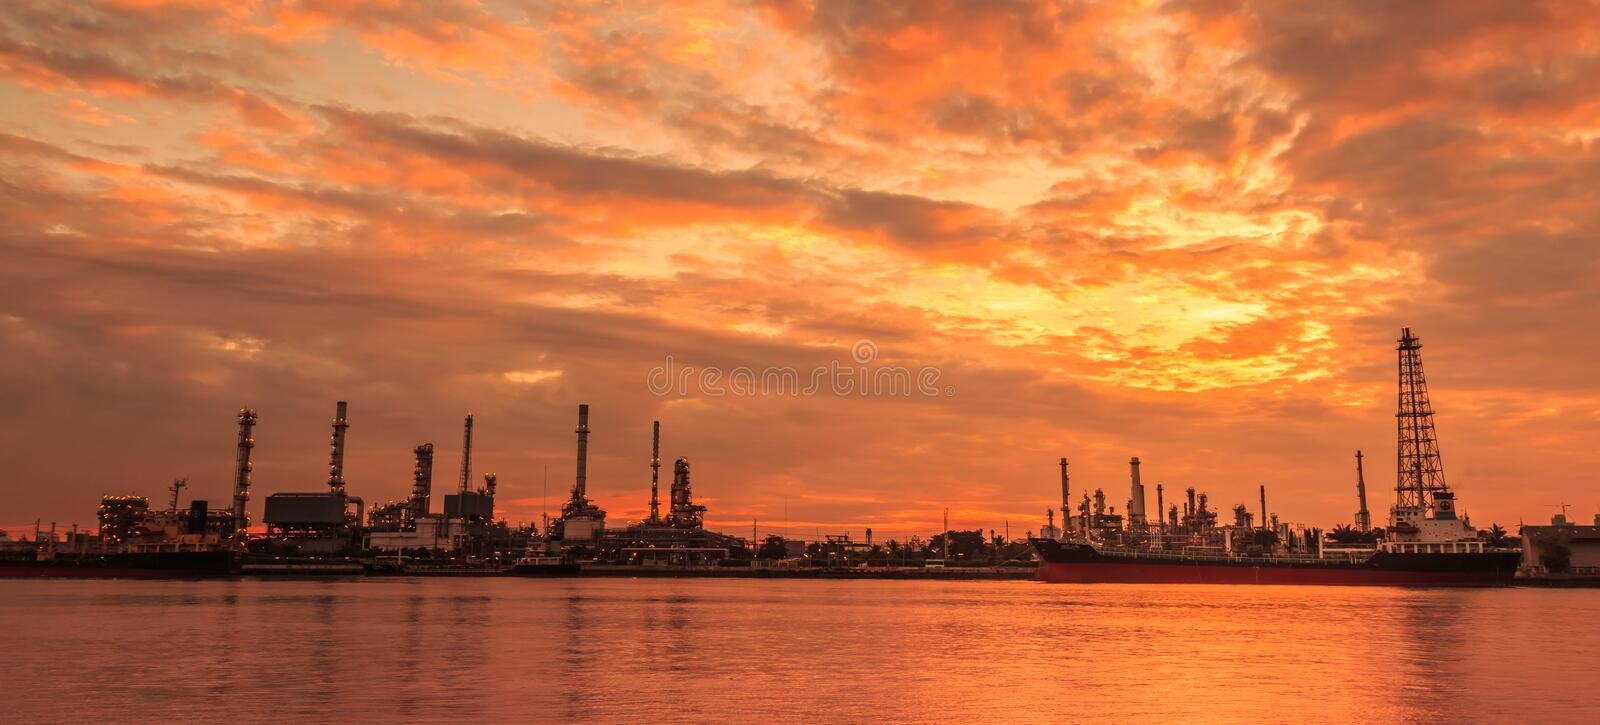 Oil refinery. Reflection of oil refinery on the water surface stock image